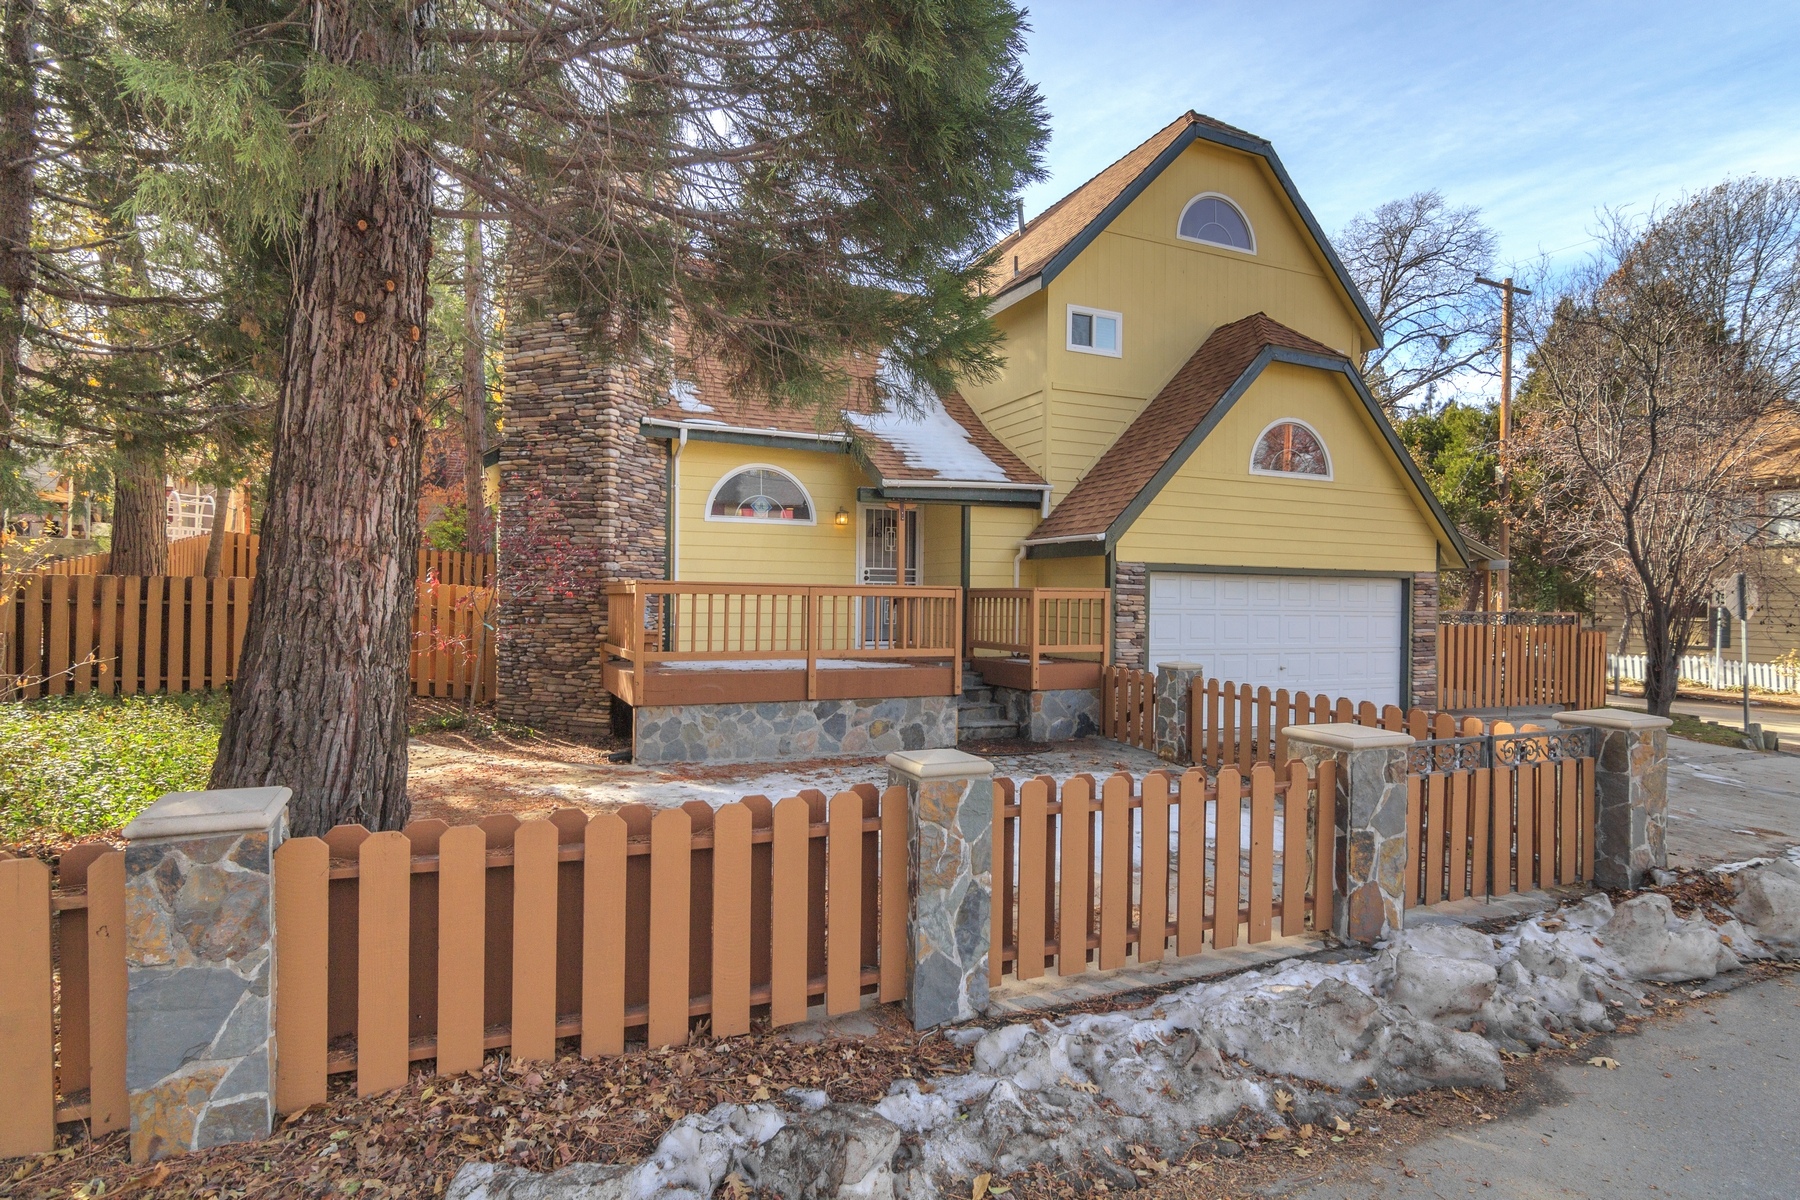 Single Family Home for Sale at 347 Sunset Drive Lake Arrowhead, California 92352 United States